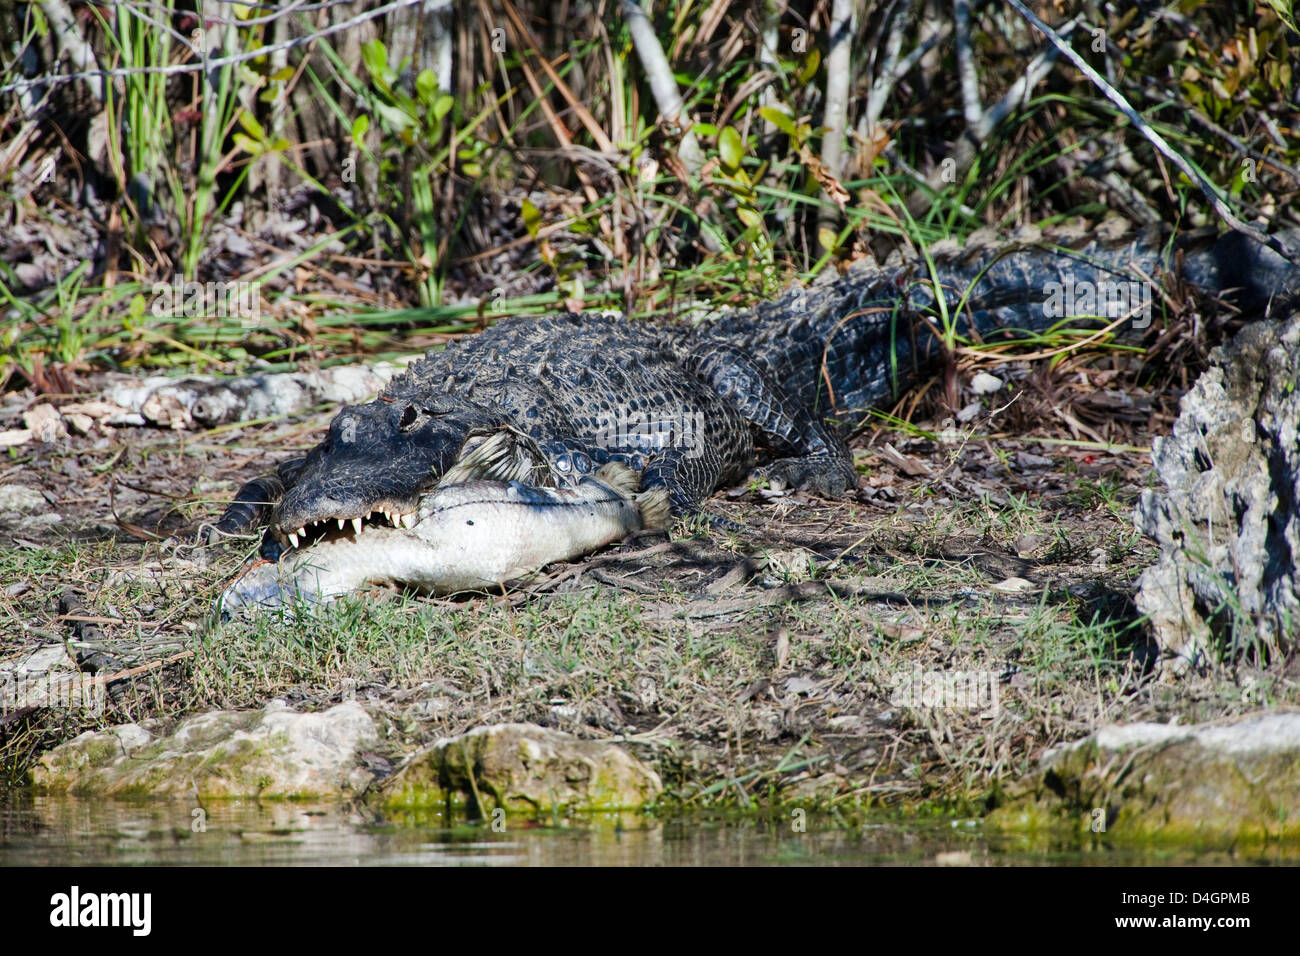 An American alligator, Alligator mississippiensis, holds a fish in it's jaws in Everglades National Park, Florida. - Stock Image